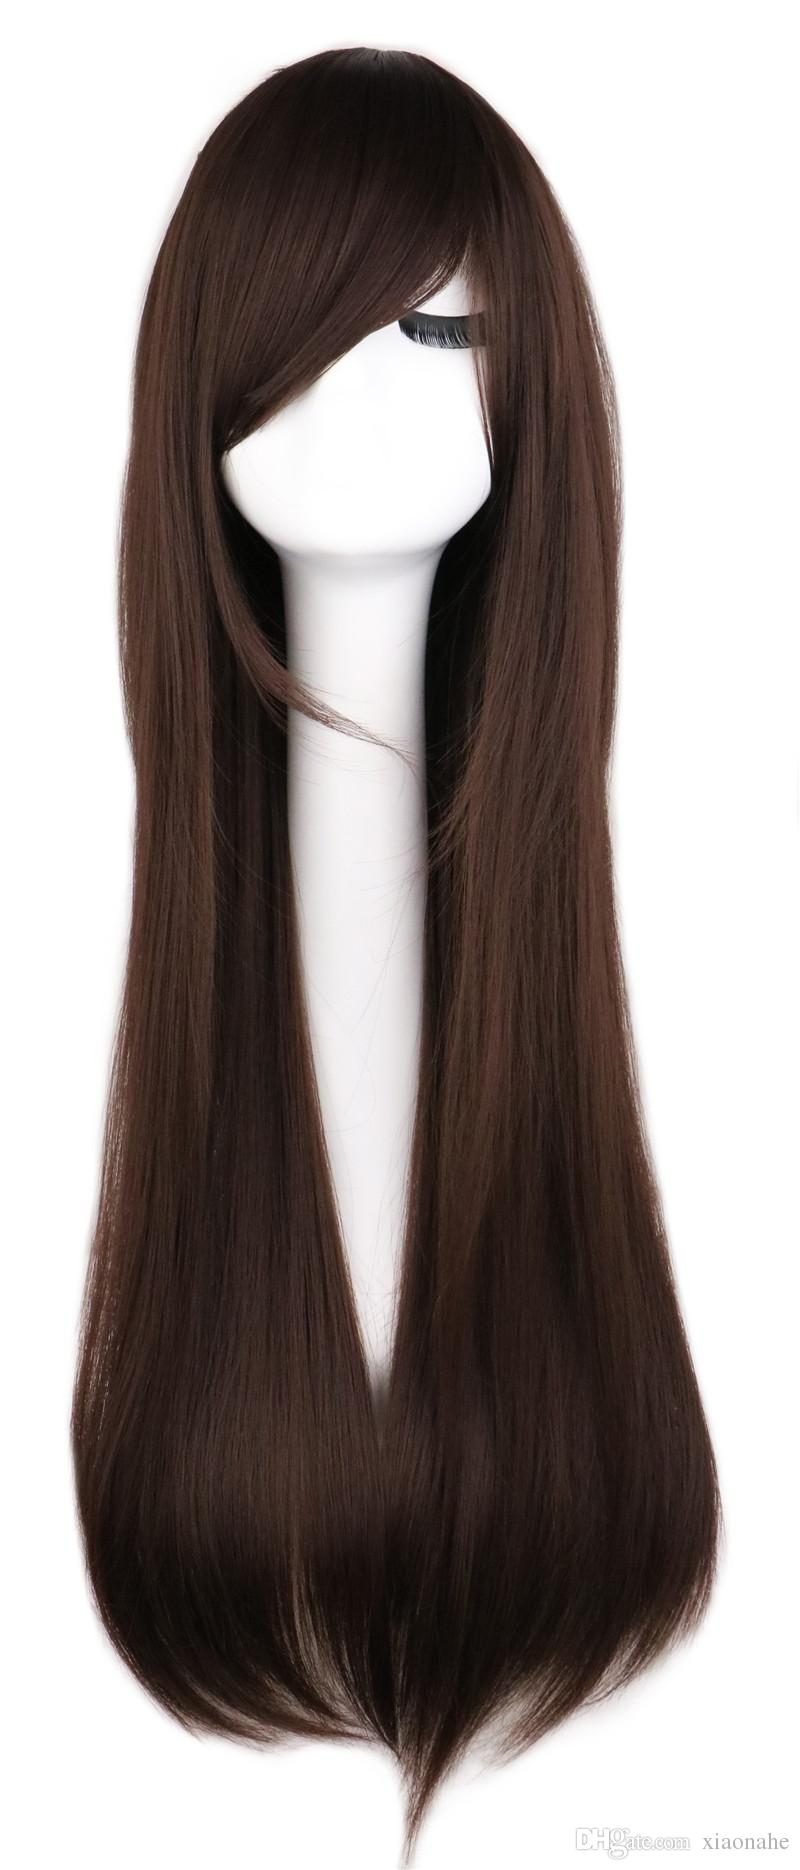 Women Men Long Straight Anime Cosutme Party Dark Brown Wig Cosplay 80 Cm High Qulaity Synthetic Hair Wigs